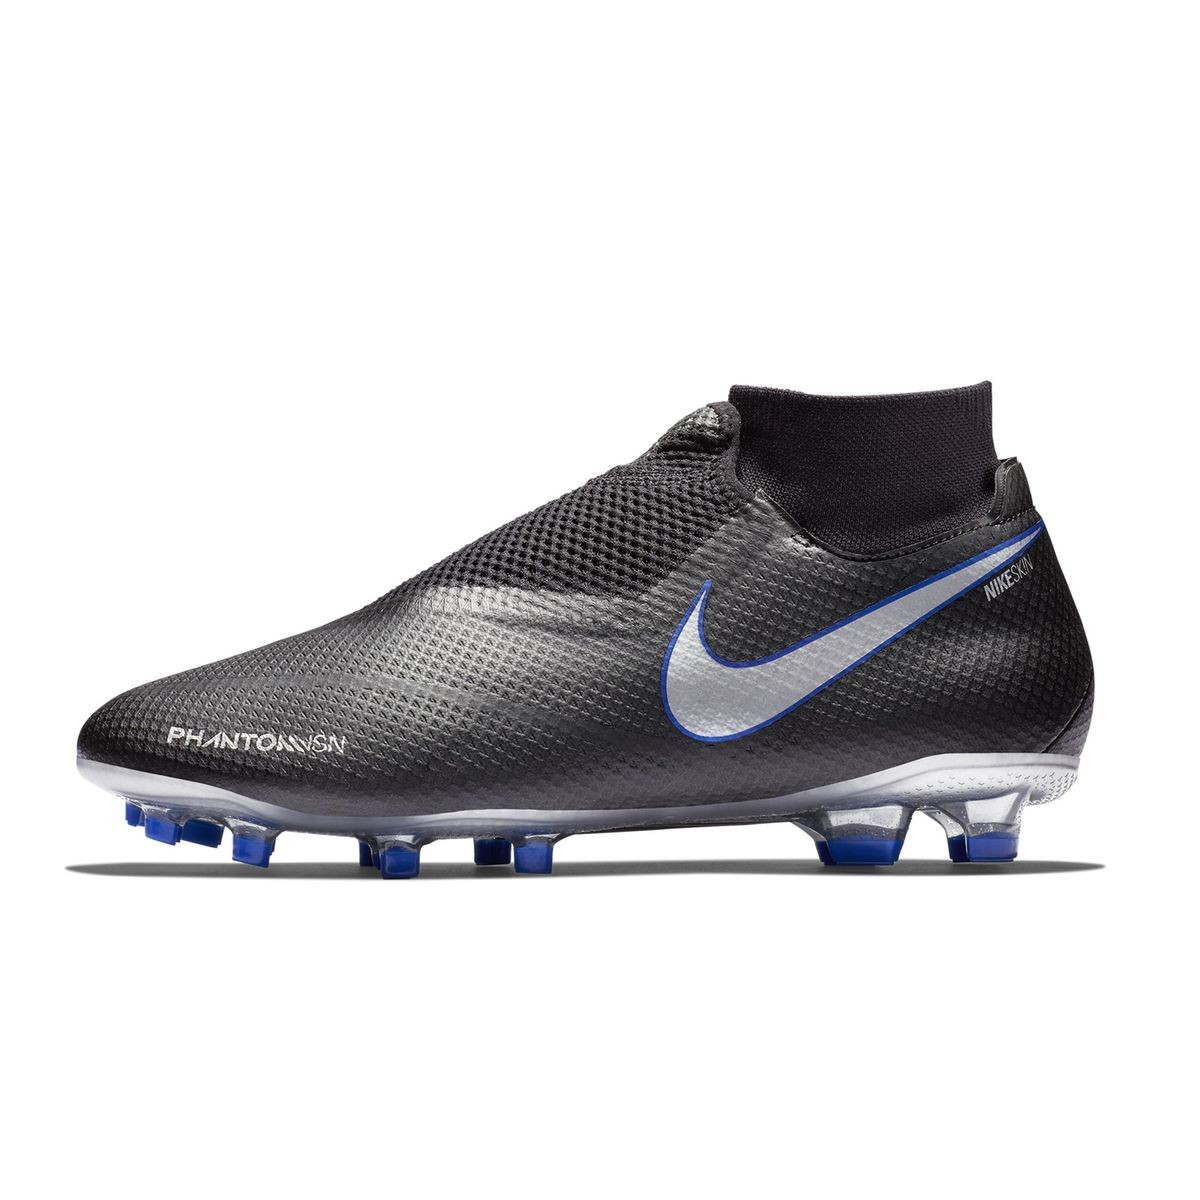 Chaussures Football Nike Phantom Vision Pro Df Fg Taille